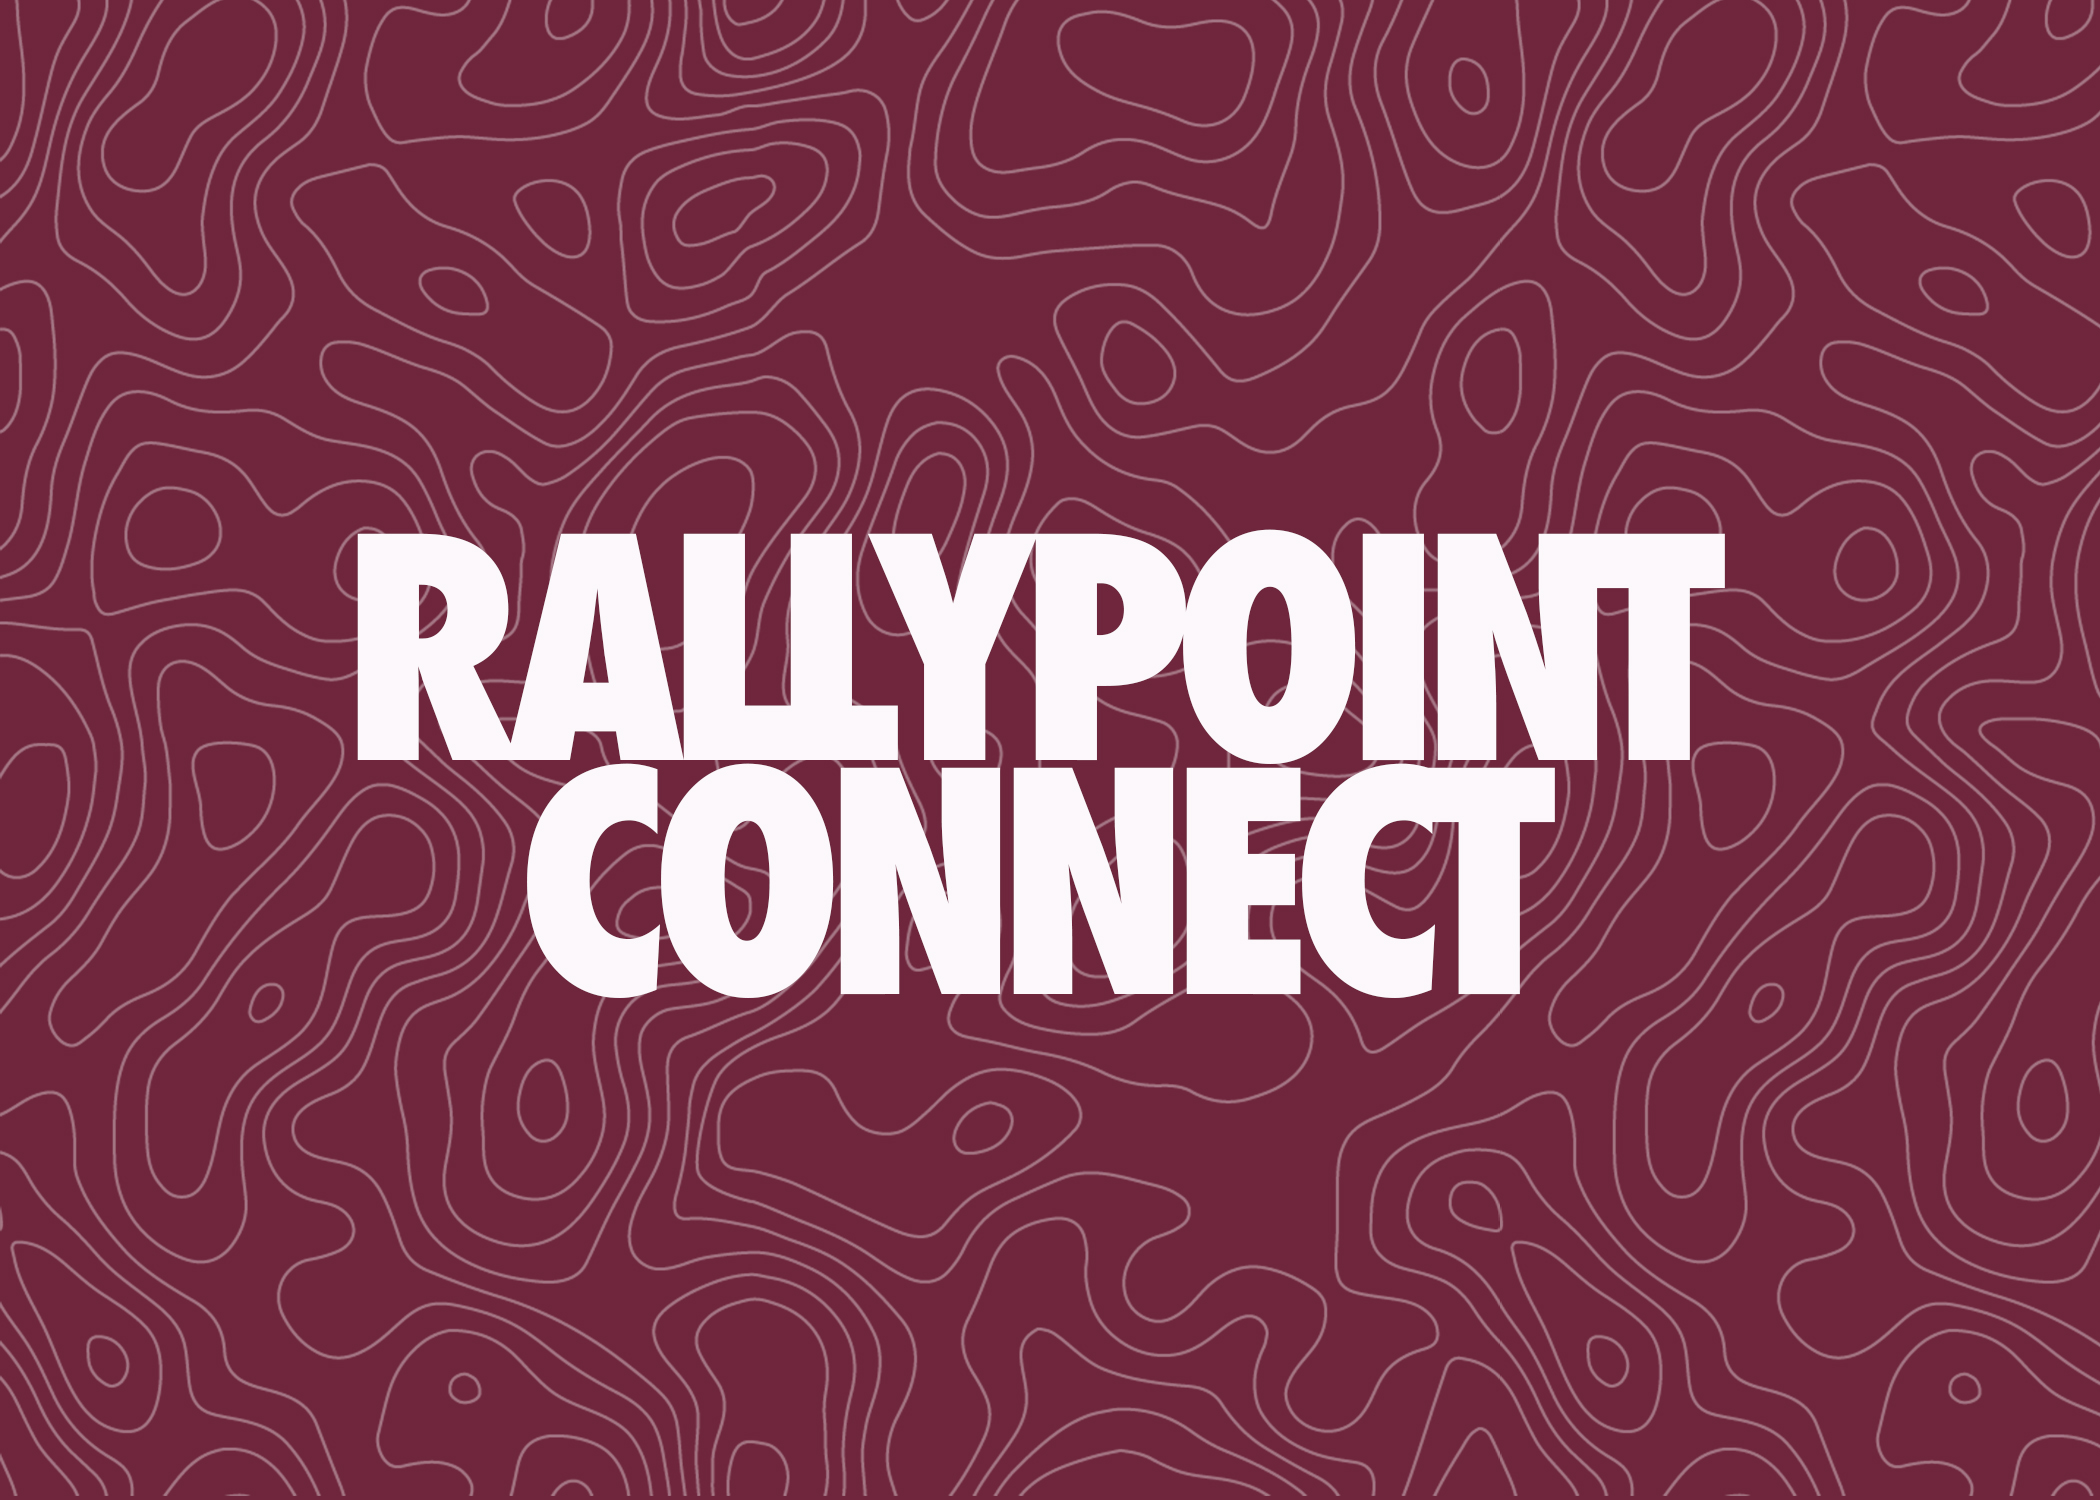 If you're coming to visit us for the first time or if you've been checking us out for a little while now, we would love for you to join us for Rallypoint Connect. Connect happens every single Sunday after our 9:30 AM service and it lasts 40 minutes. You will get to meet and hear from Pastor Drew and about what our church is all about and the best ways for you to take a next step in being a part of it. This is the best entry point in getting connected and getting to know the heart of Rallypoint Church. We can't wait to have you join us! Lunch and childcare are included as part of the program each week.